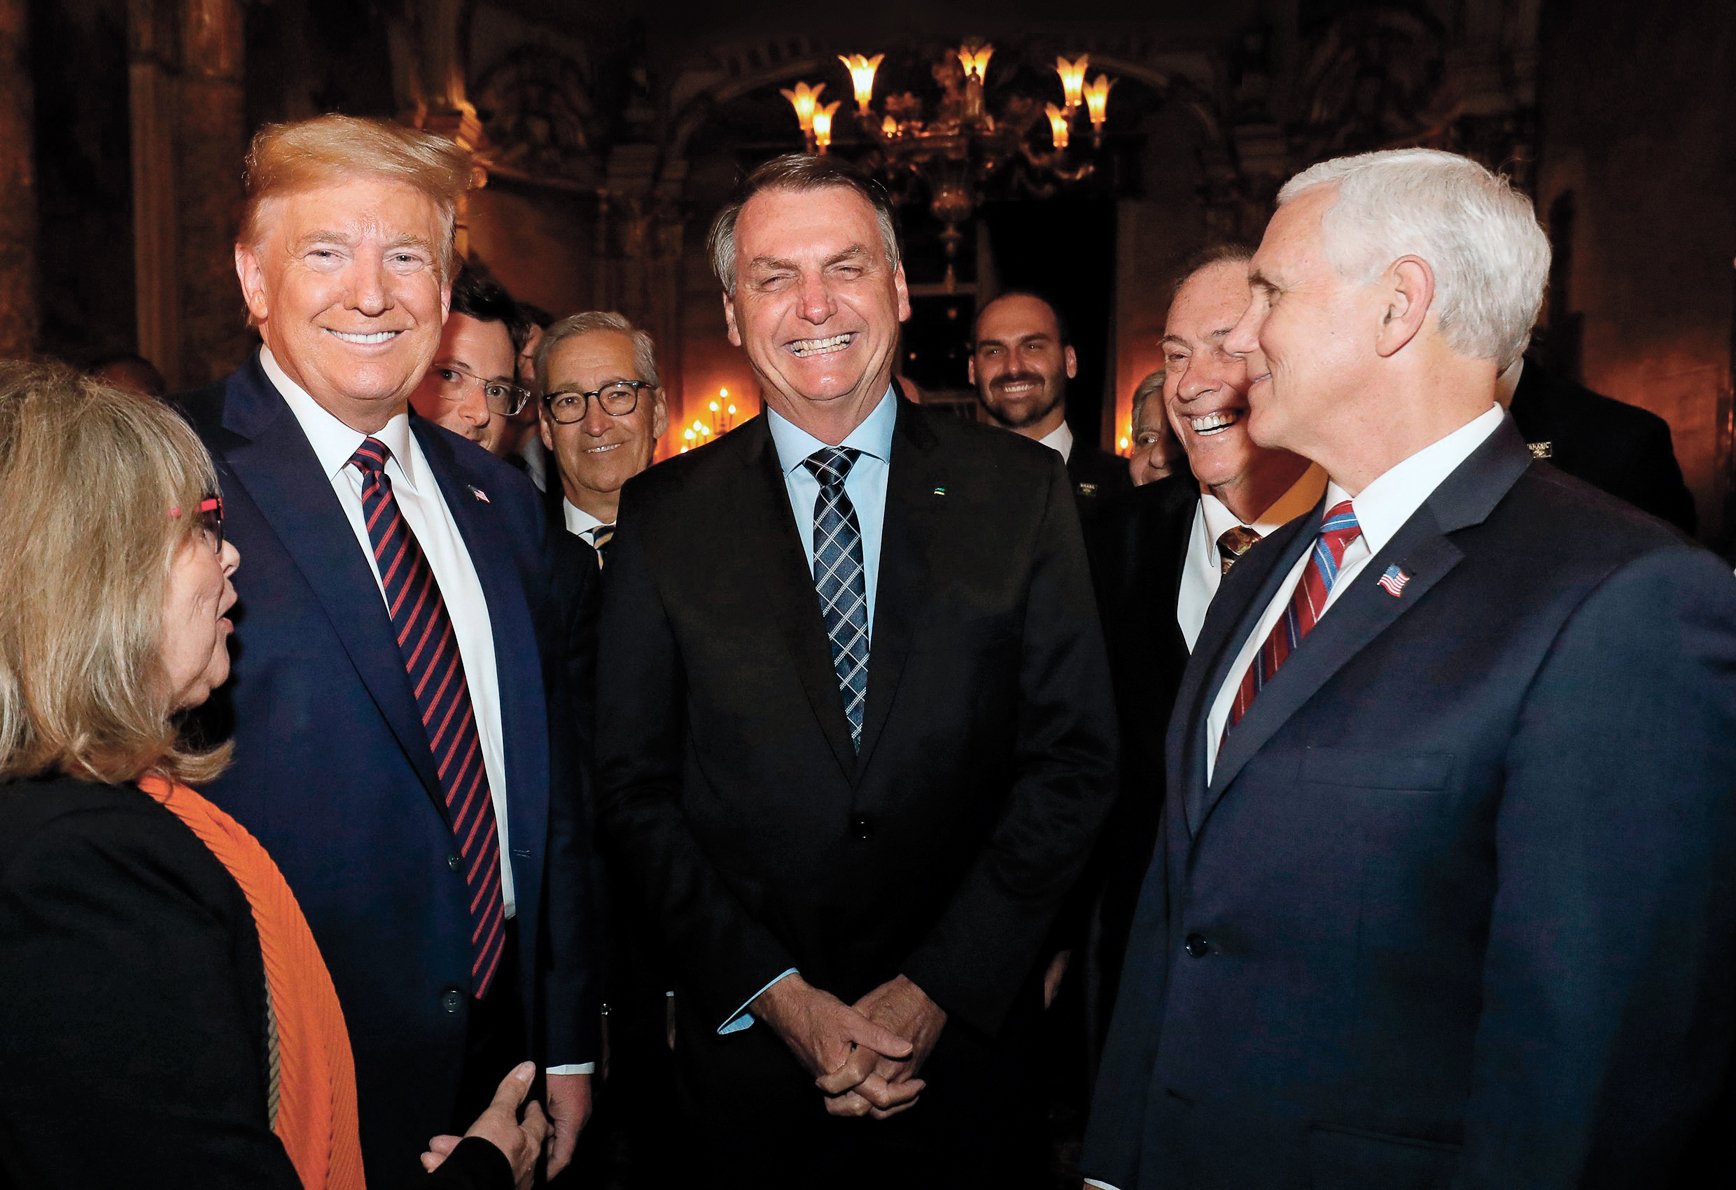 In this March 7, 2020 photo provided by Brazil's presidential press office, Brazil's President Jair Bolsonaro, center, stands with President Donald Trump, second from left, Vice President Mike Pence, right, and Brazil's Communications Director Fabio Wajngarten, behind Trump partially covered, during a dinner in Florida. Wajngarten tested positive for the new coronavirus, just days after the trip, according to Bolsonaro's communications office onVirus Outbreak Brazil, Florida, United States - 07 Mar 2020